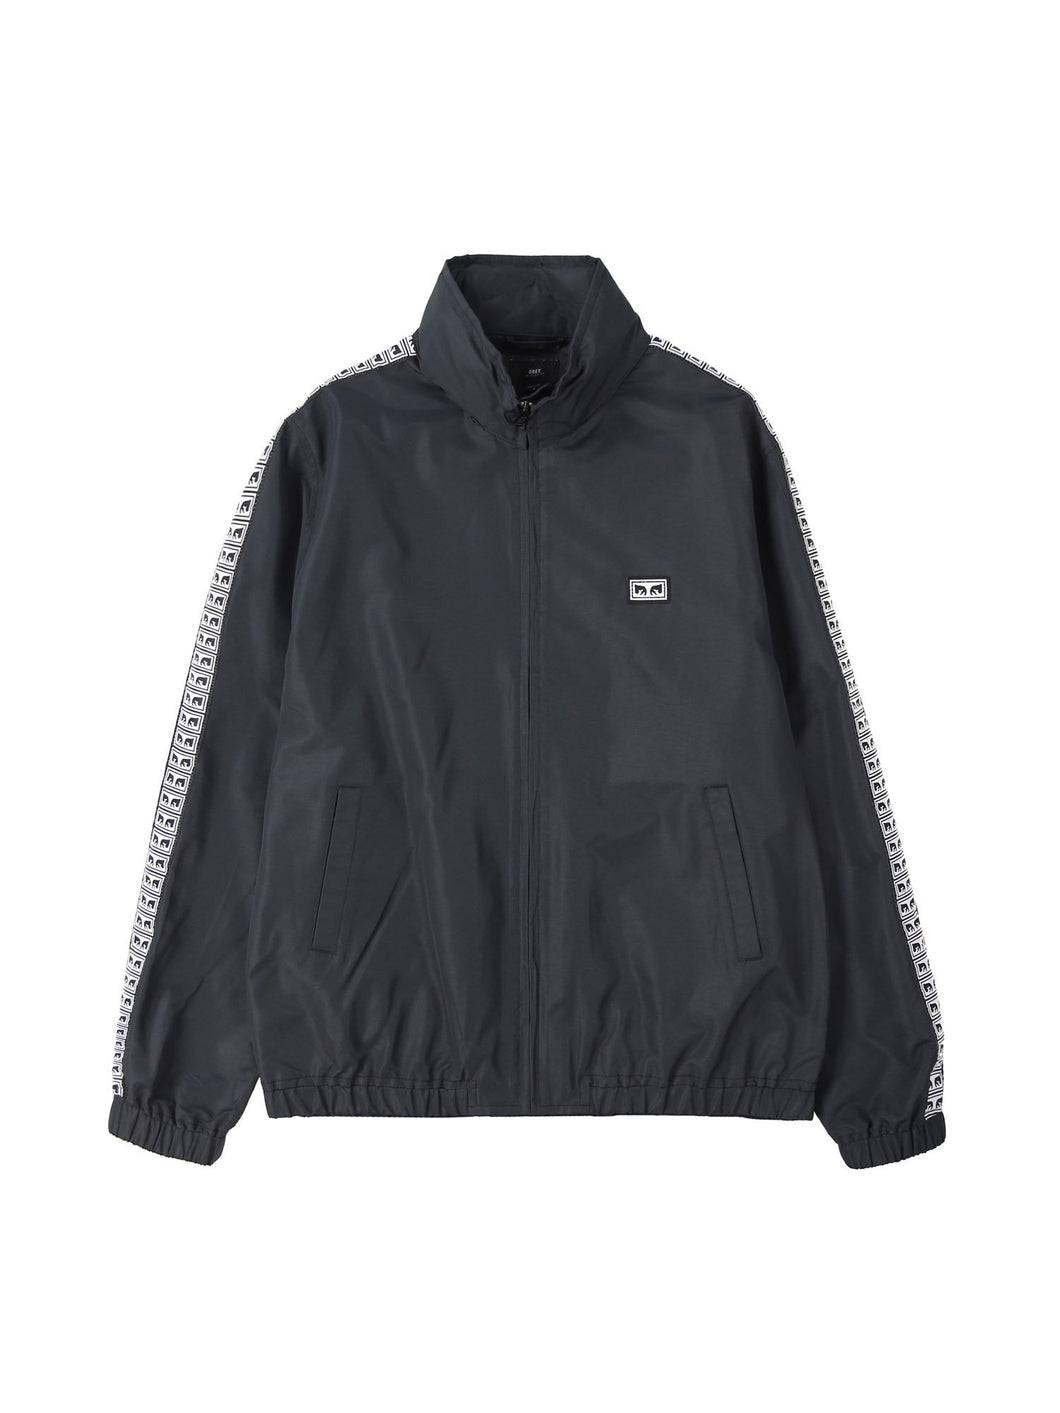 OBEY EYES TRACK JACKET // BLACK